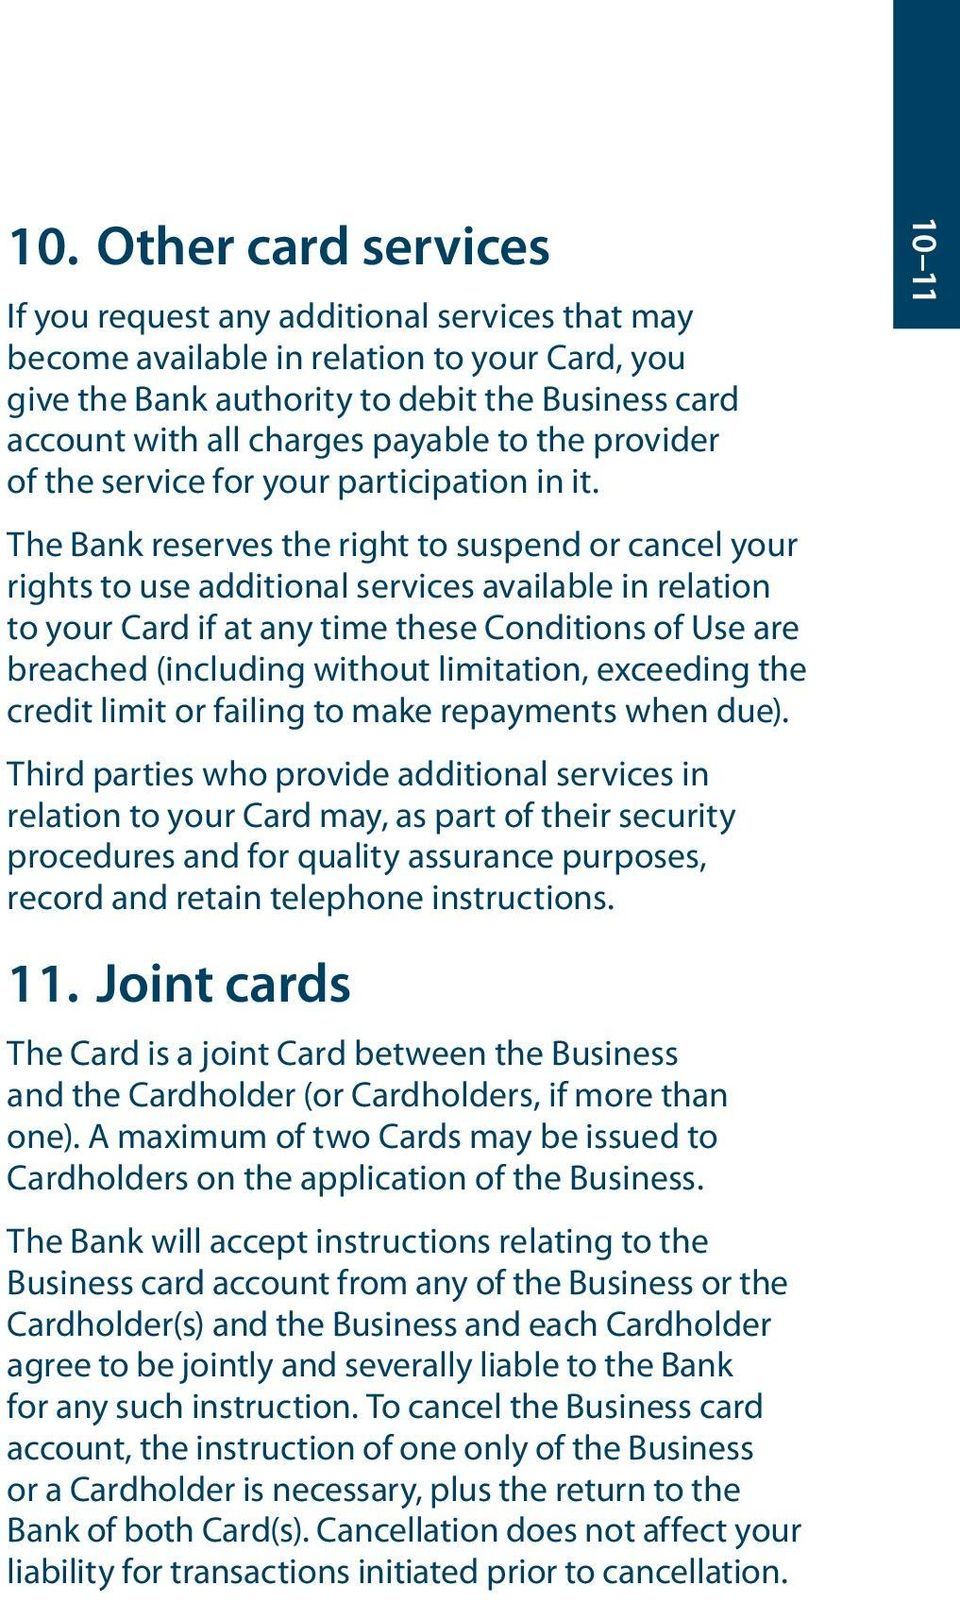 The Bank reserves the right to suspend or cancel your rights to use additional services available in relation to your Card if at any time these Conditions of Use are breached (including without